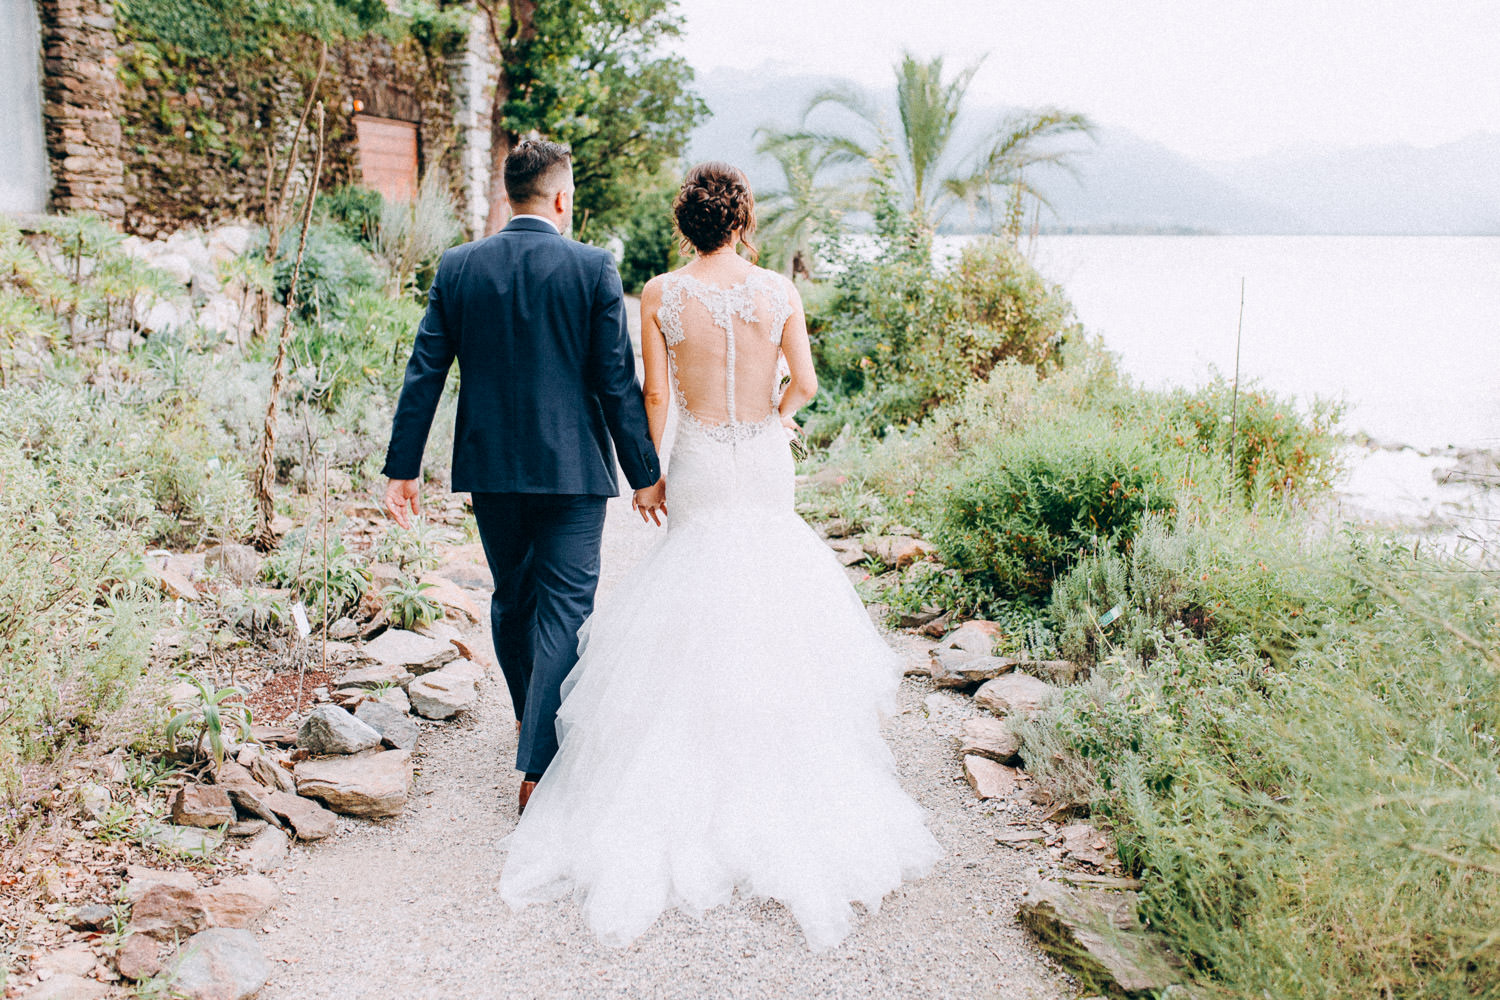 davidandkathrin-com-ticino-brissago-wedding-photographer-148